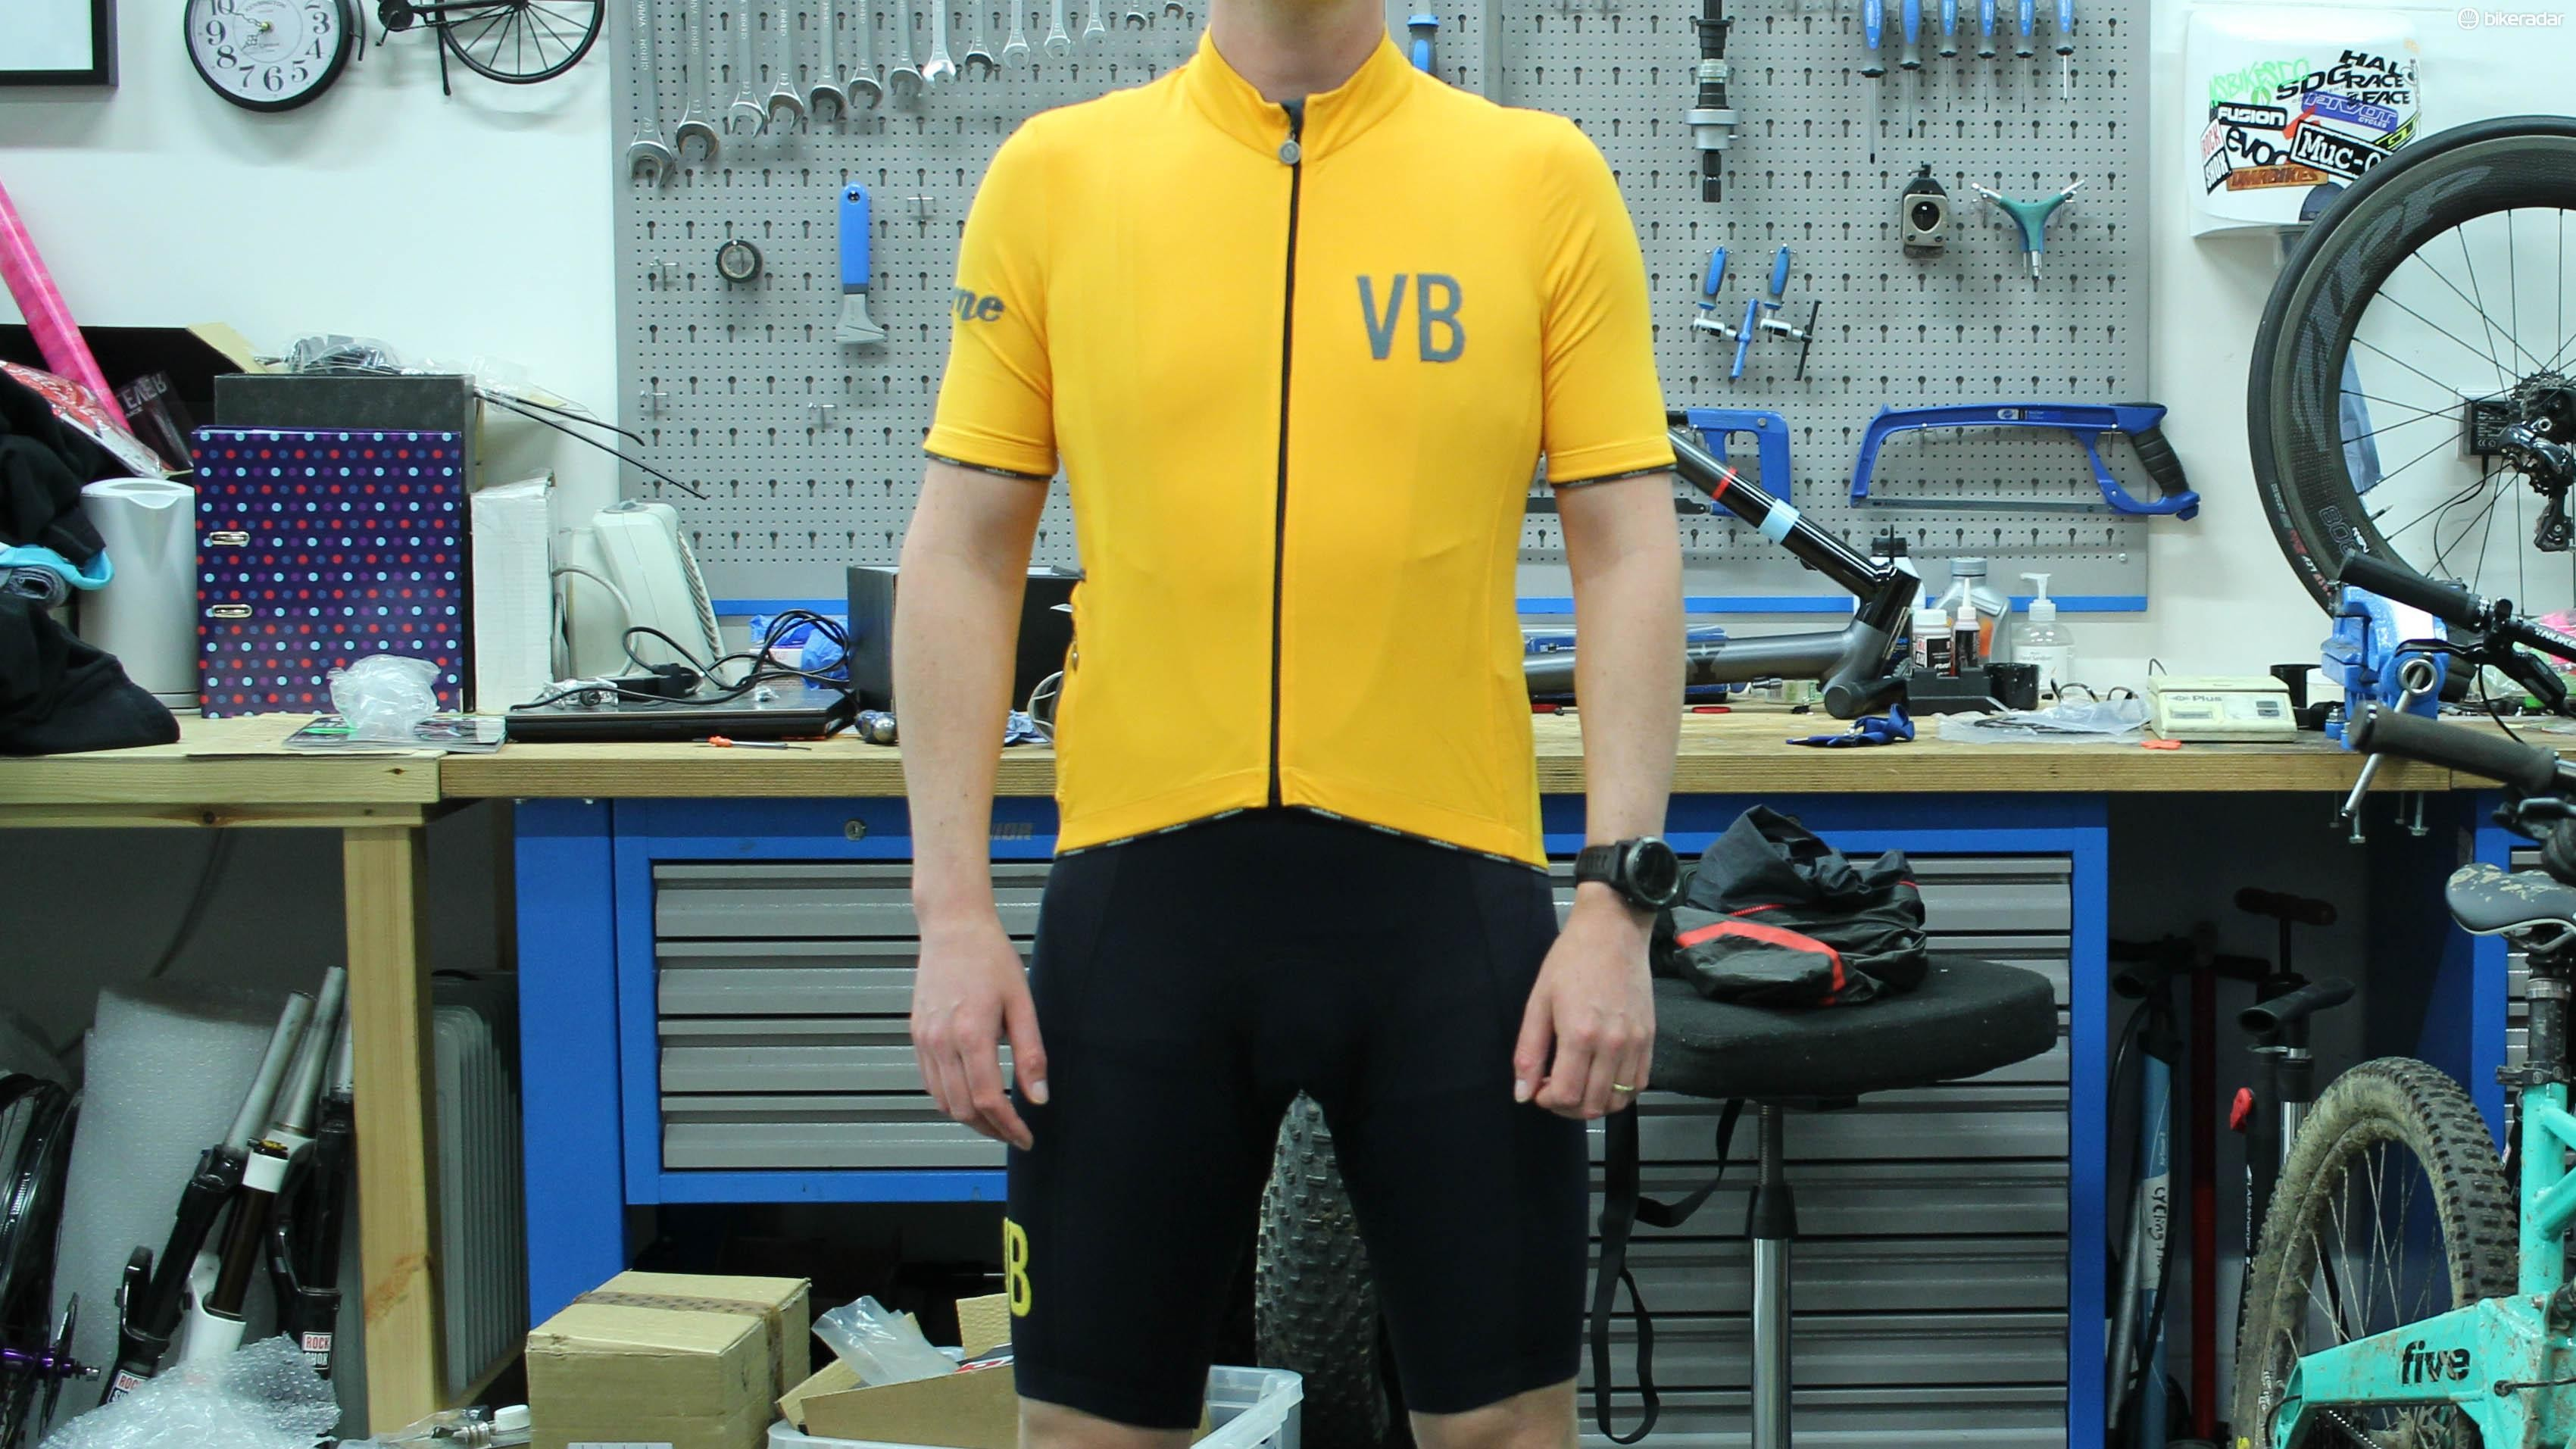 Vélobici's Verne jersey and bibs have classic, clean looks